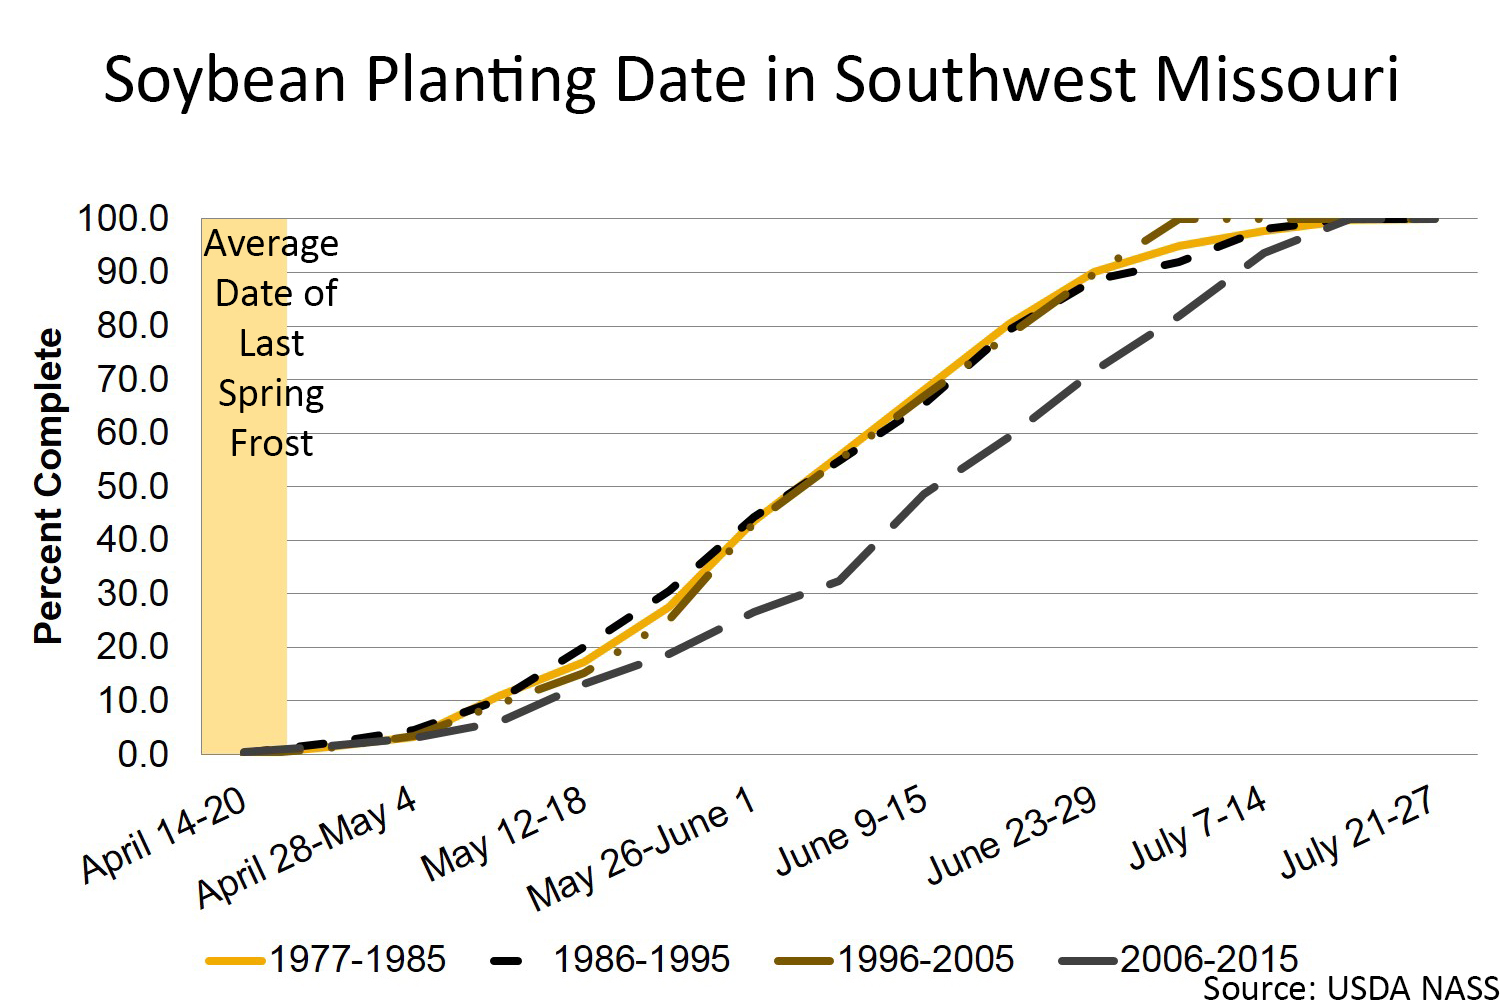 Soybean Planting date in Southwest Missouri chart